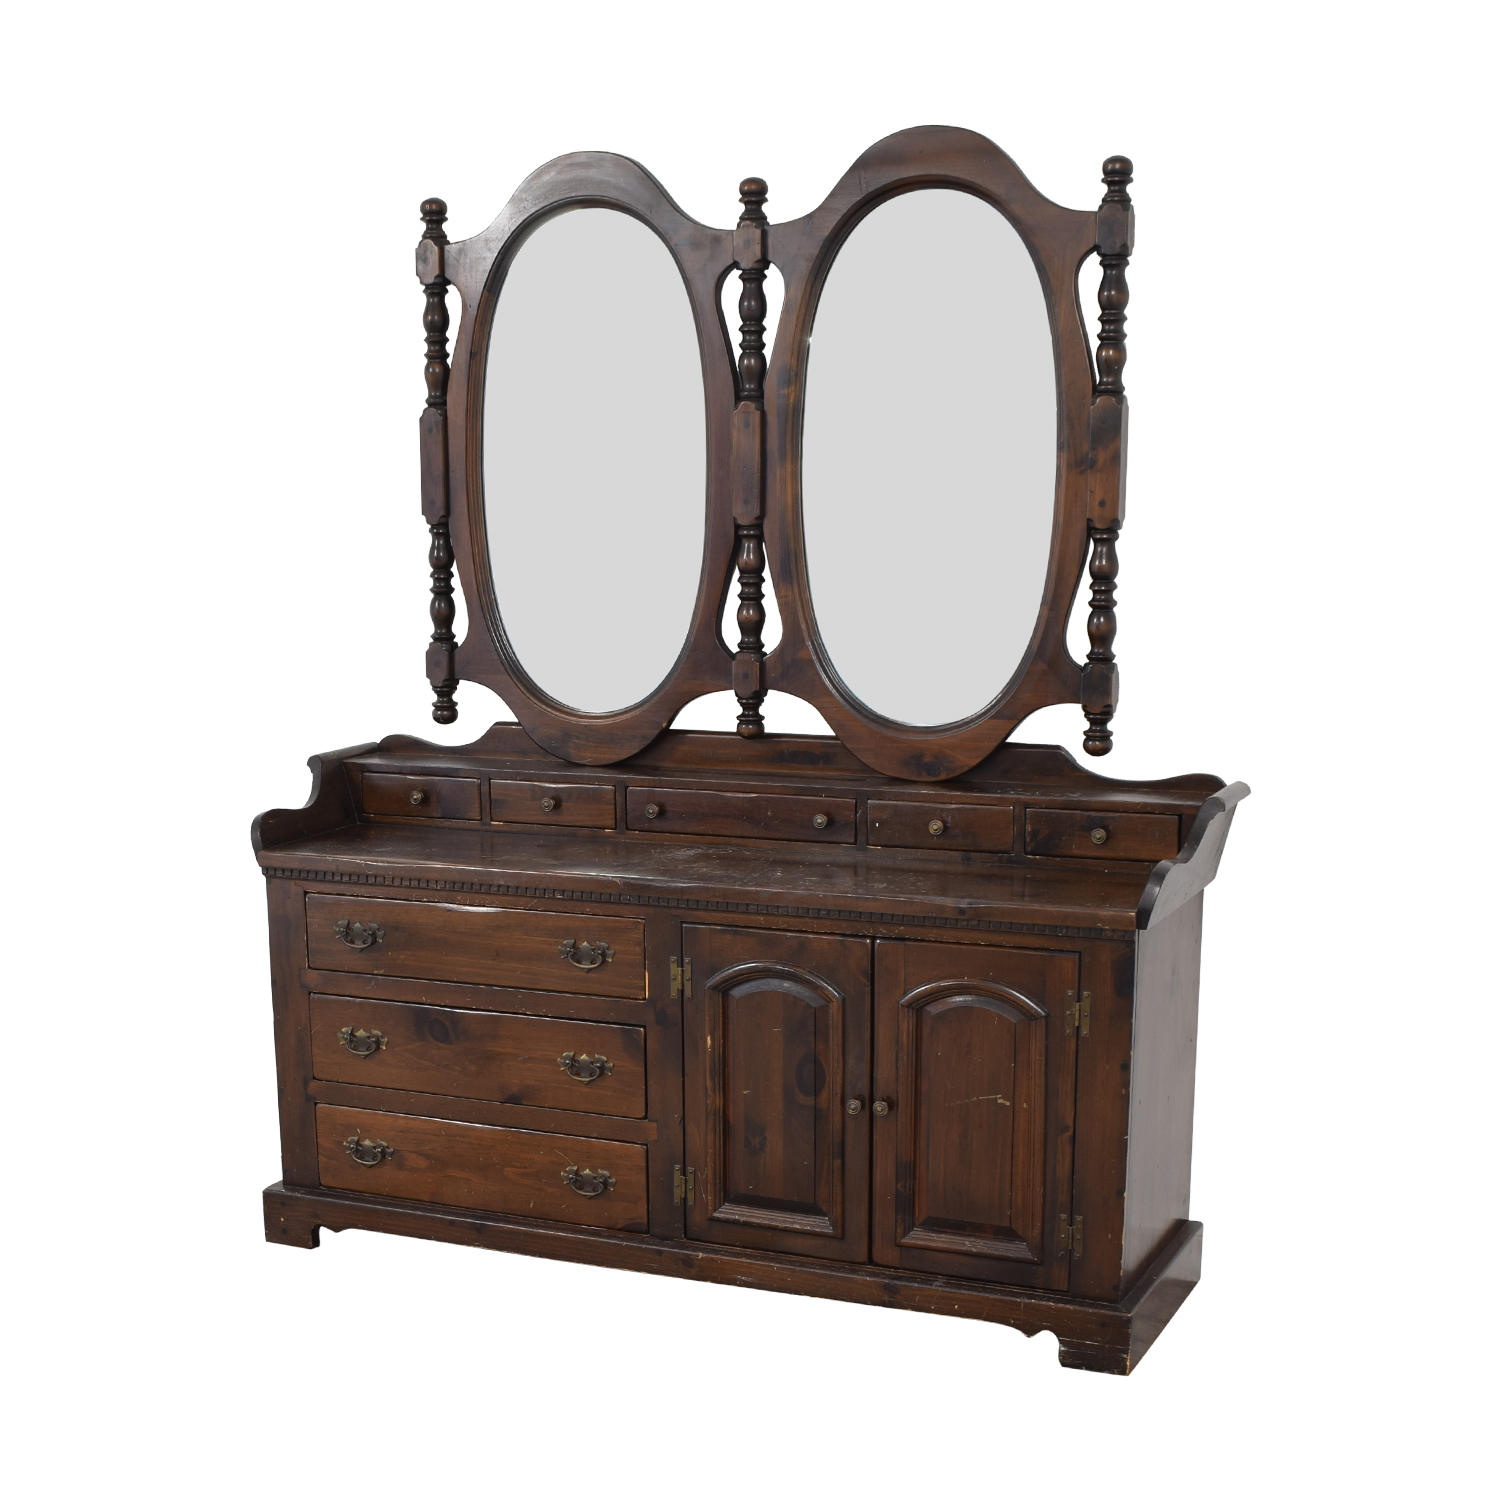 Antique Dresser with Twin Mirrors second hand